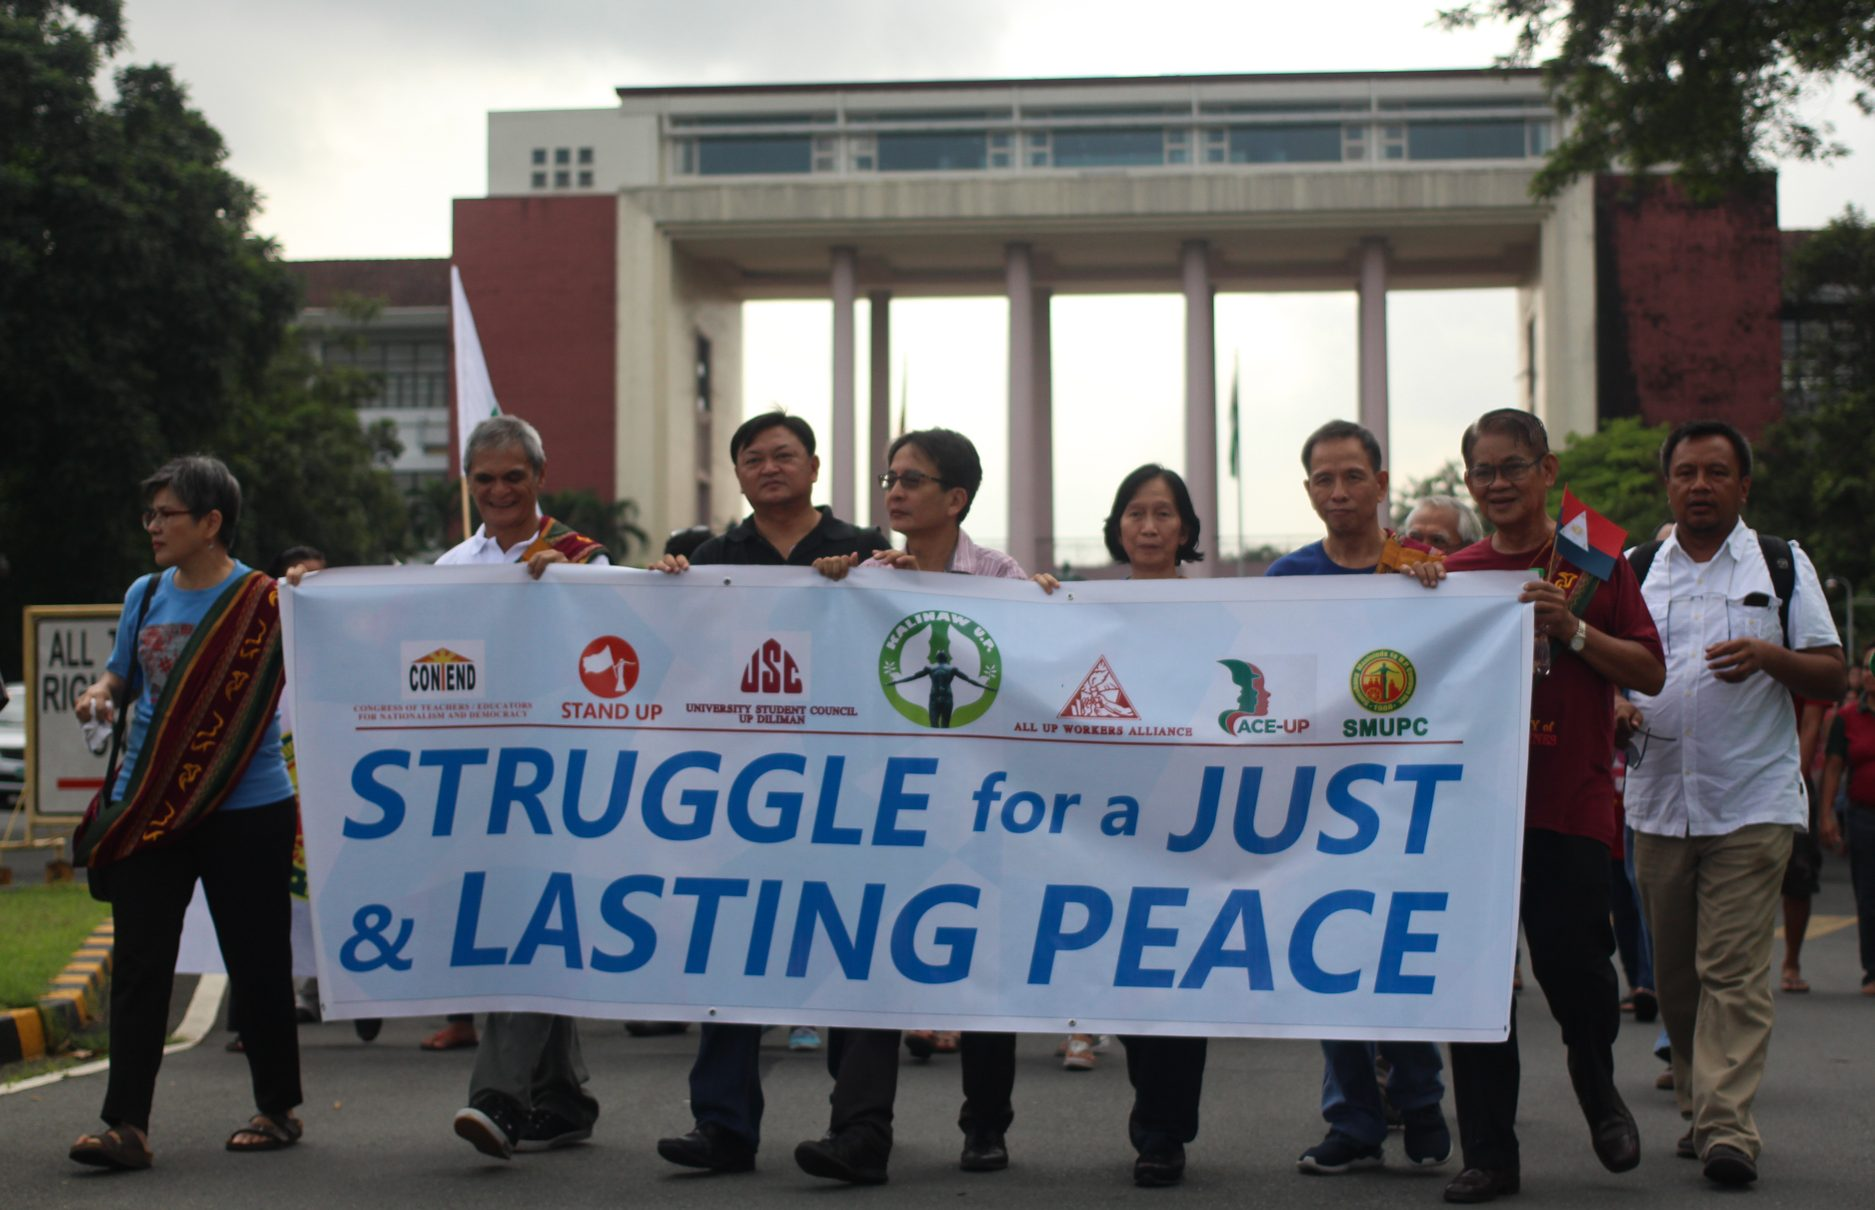 L-R: Dr. Carol Araullo of Bayan. NDFP peace consultant Jaime Soledad, UP Vice Chancellor for Community Affairs Nestor Castro and Chancellor Michael Tan, Wilma and Benito Tiamzon, Rafael Baylosis, Randy Malayao, join in the march towards the Diliman Commune marker (Photo by Gino Estella/Bulatlat)